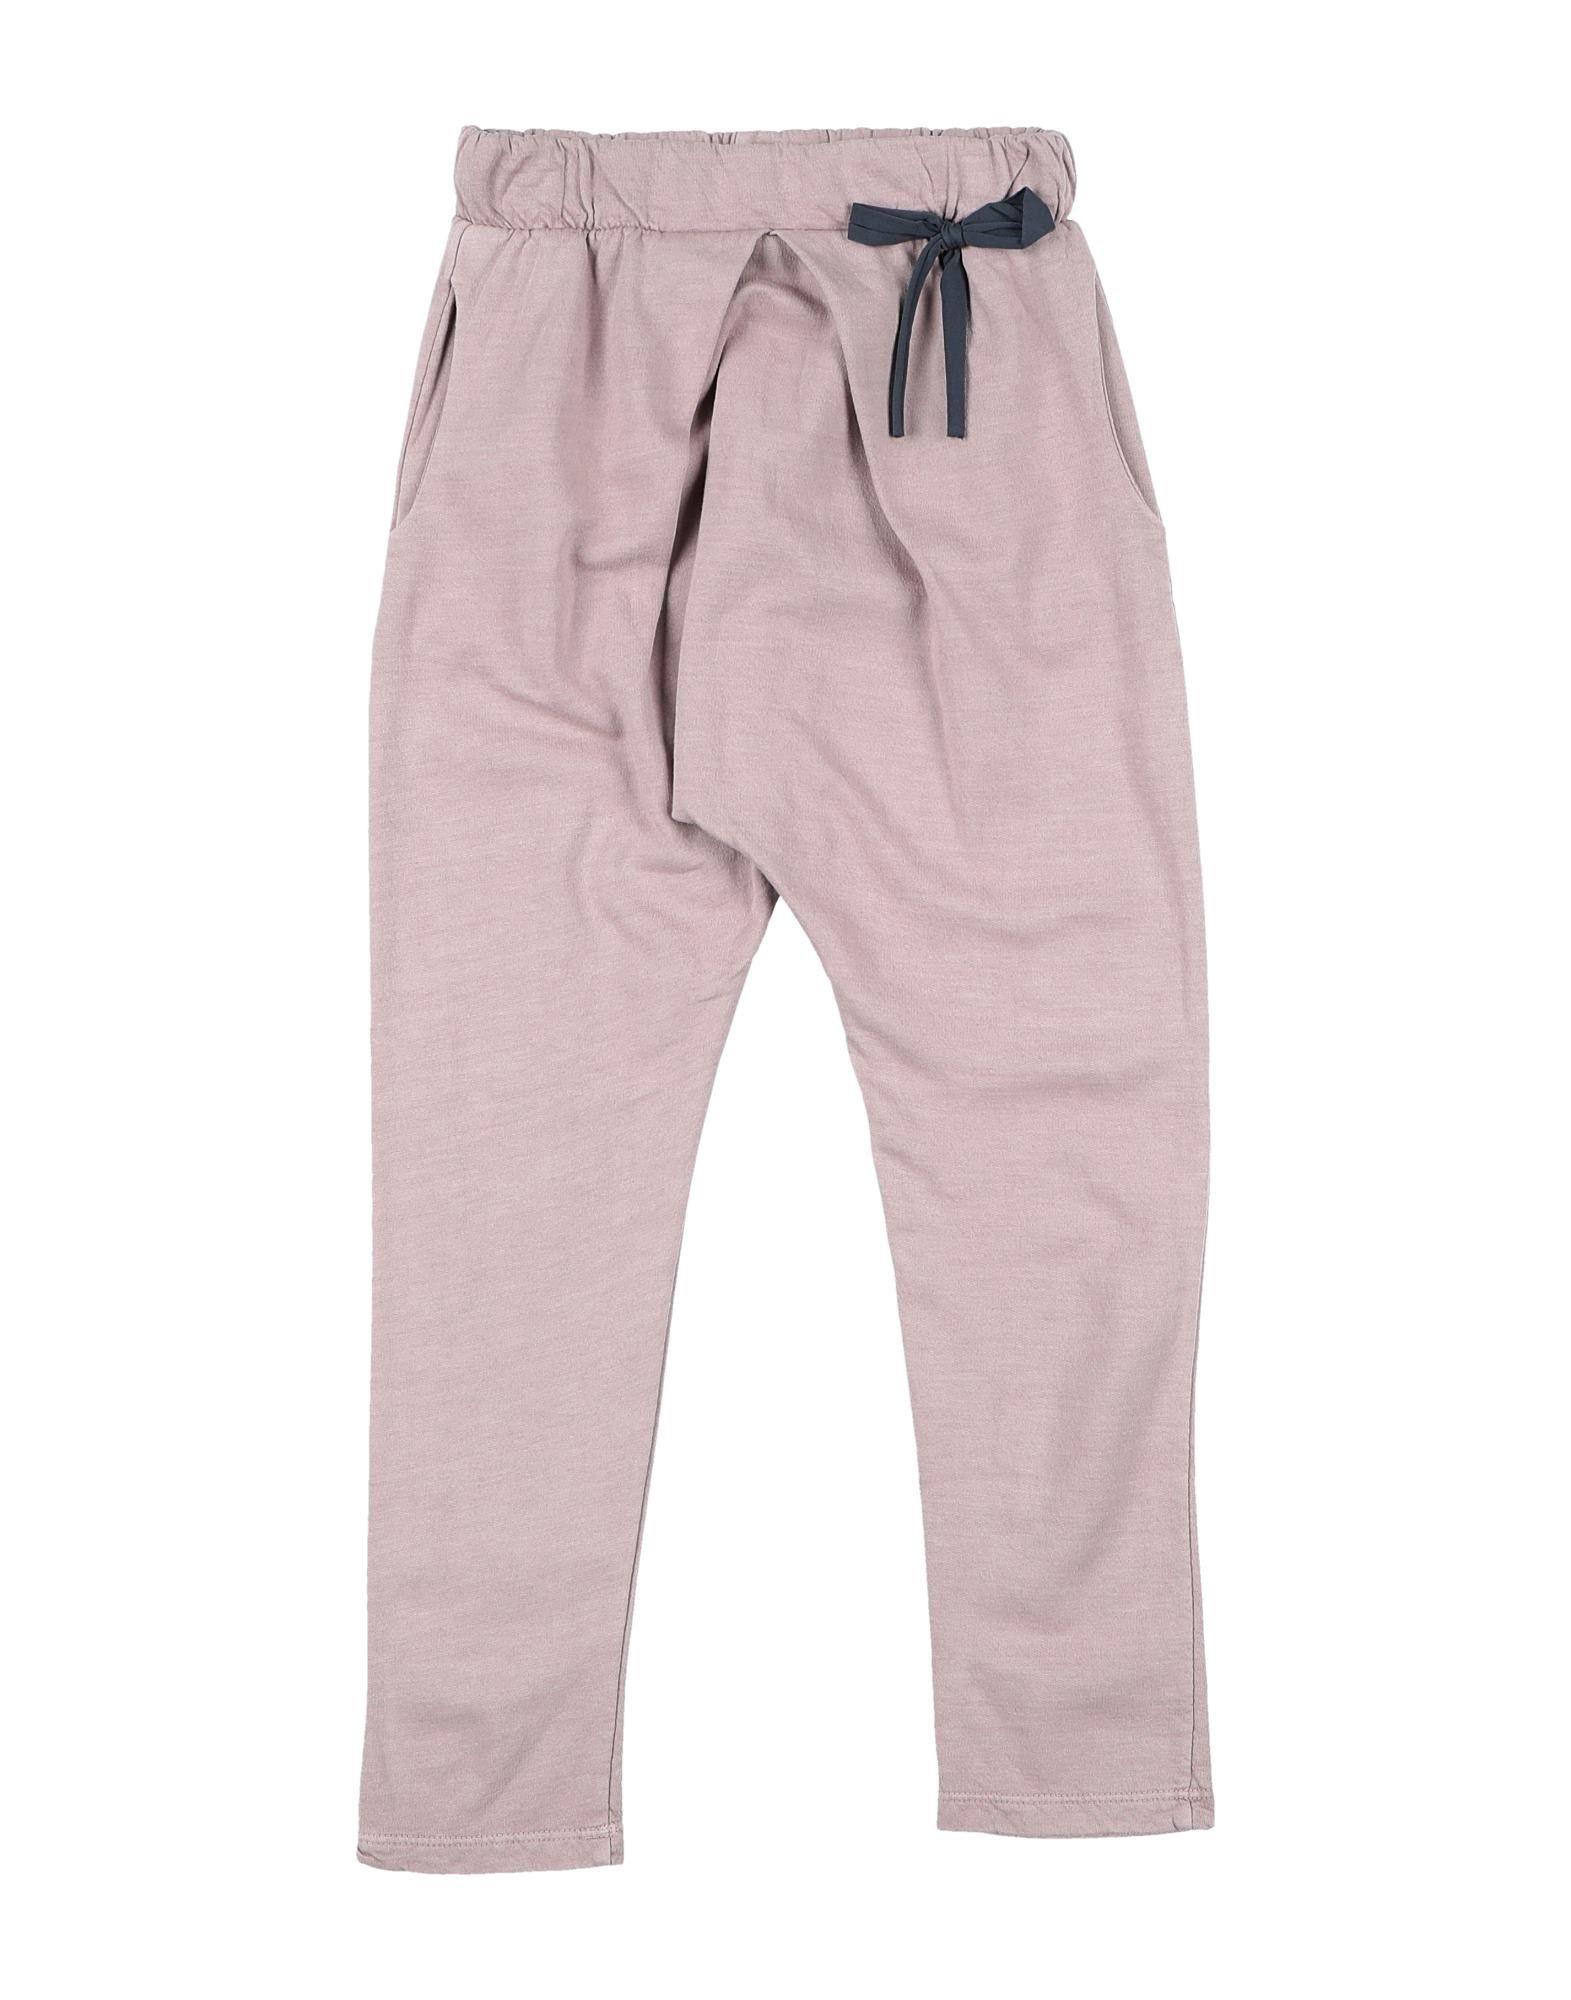 Kid's Company Kids' Casual Pants In Pink